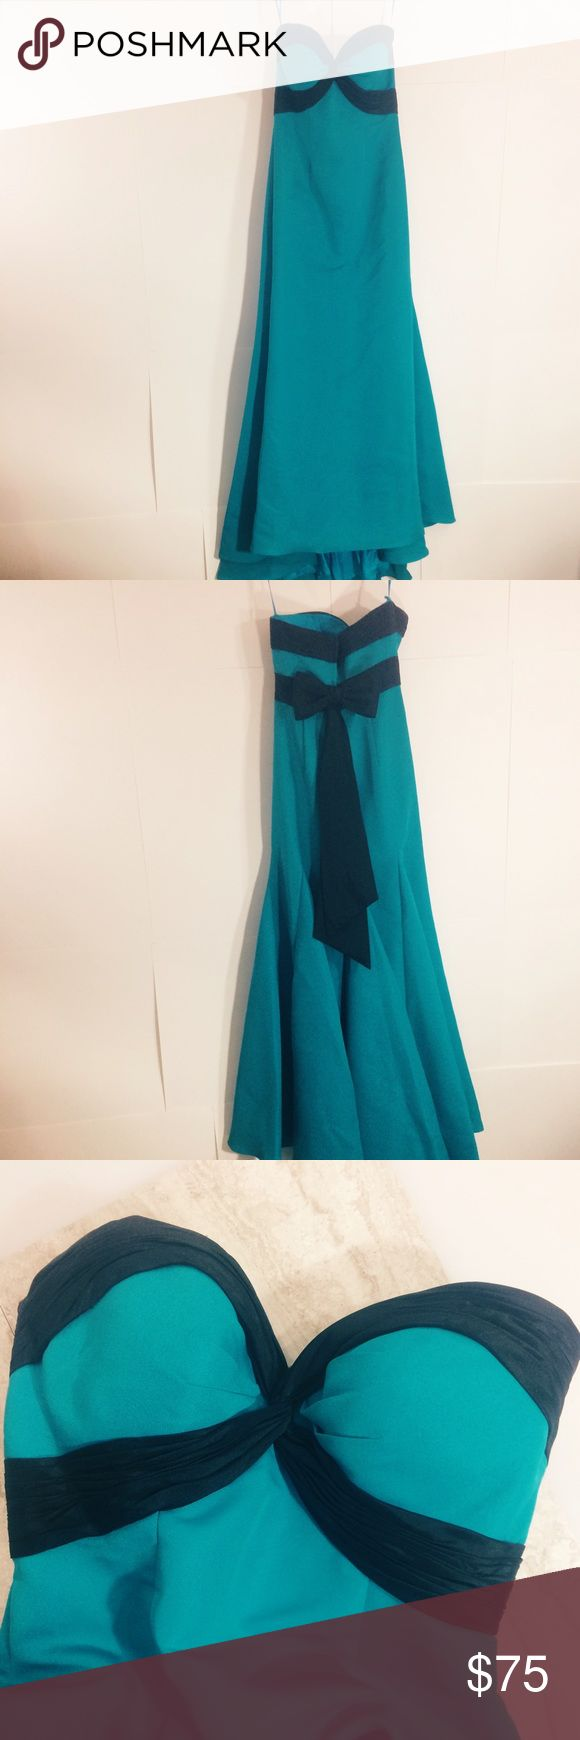 Gorgeous Jovani  trumpet gown Beautiful teal and black trumpet gown with zip up back, bony throughout bodice, molded cups, trumpet fit and flare look, large bow in back. Amazing dress!  Some spots are visible upon close examination, adding photos in another listing. Have not tried to dry clean yet, could come out that way. Priced accordingly, this dress is so well-made and gorgeously flattering! Open to reasonable offers, no trades, bundle to save! Jovani Dresses Prom